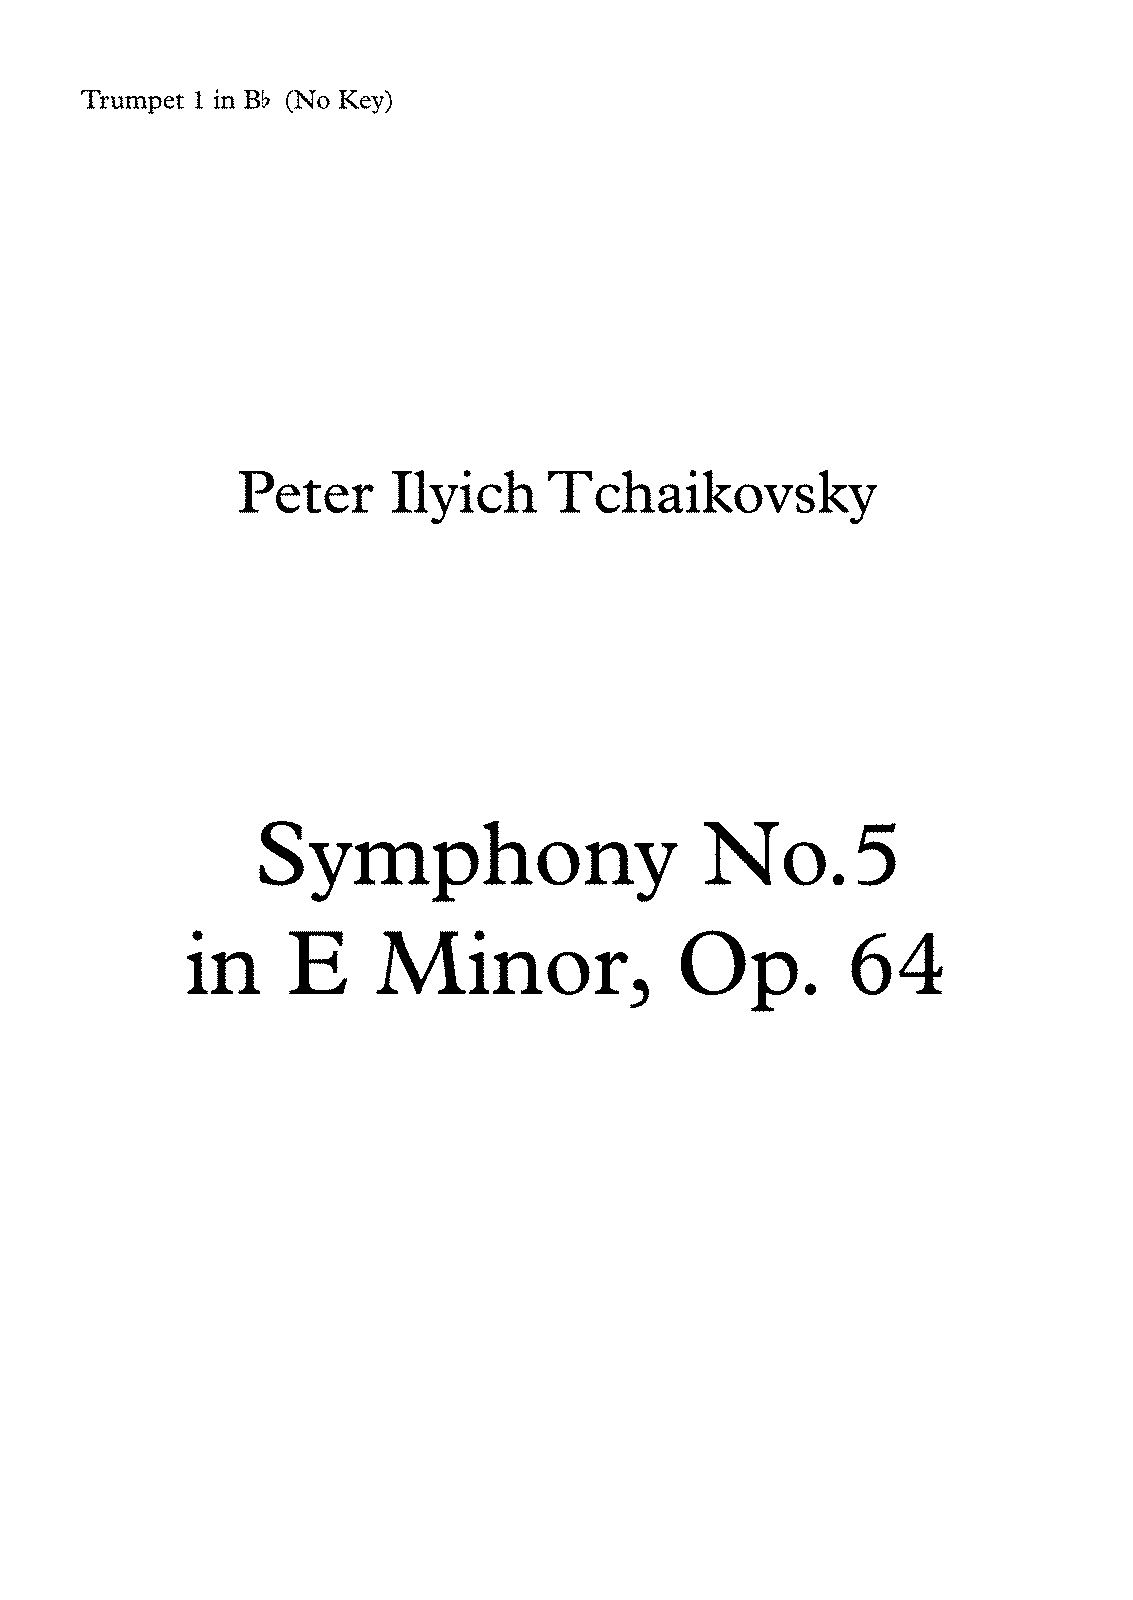 PMLP02739-Tchaikovsky Symphony No 5 - Trumpet 1 in Bb (No Key).pdf